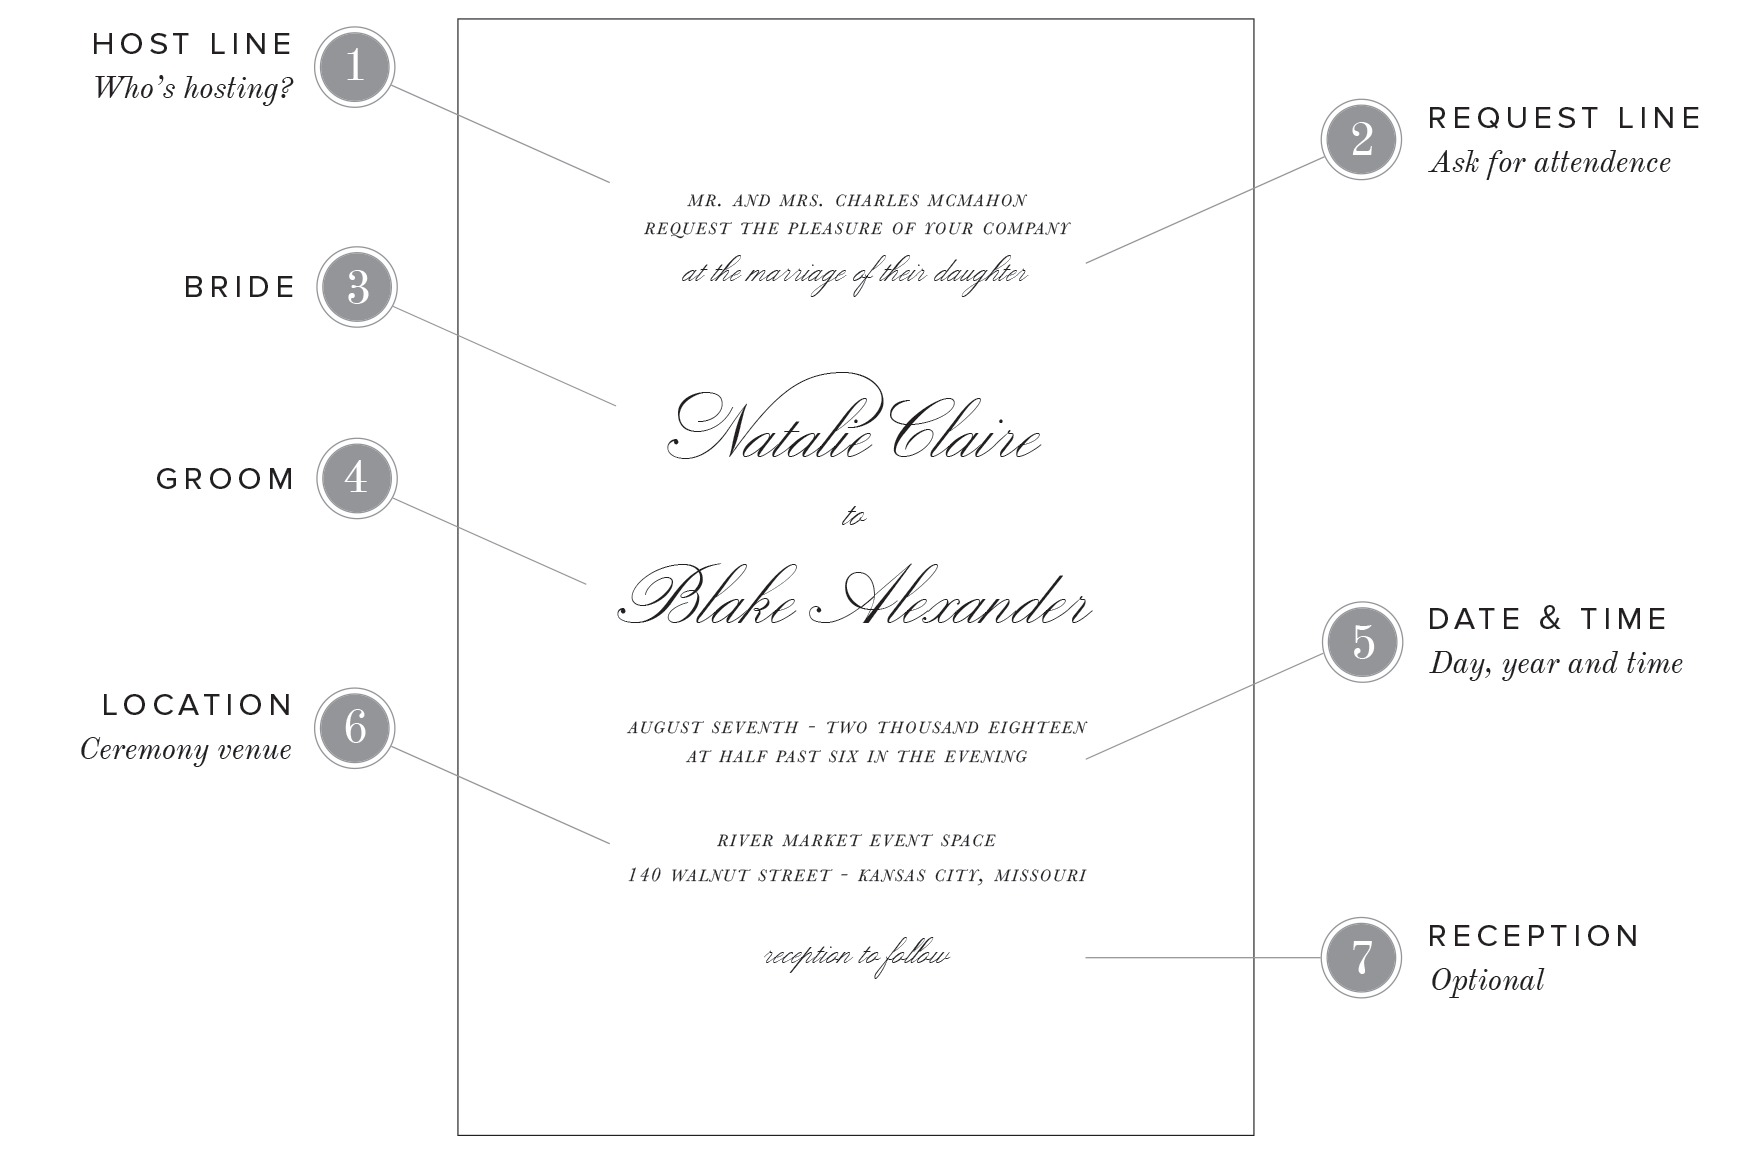 wedding invitation wording examples  shine wedding invitations, Wedding invitations